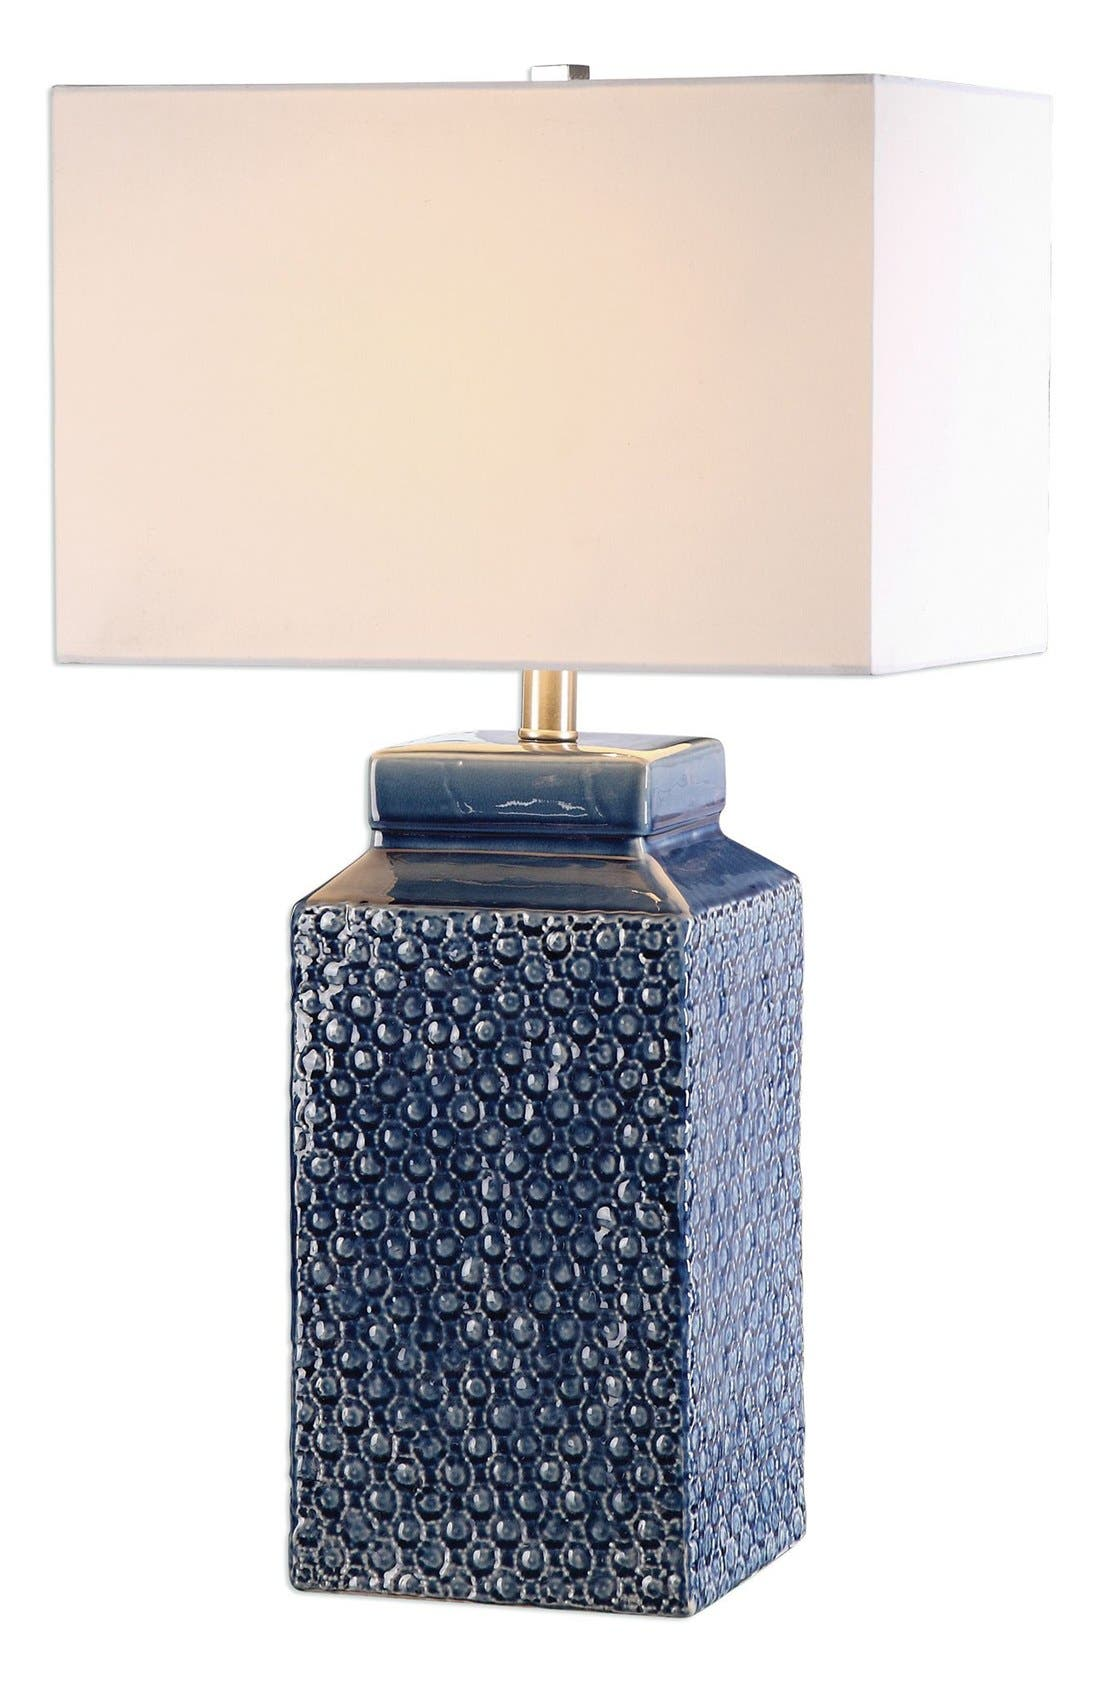 Main Image - Uttermost 'Sapphire' Glazed Ceramic Table Lamp